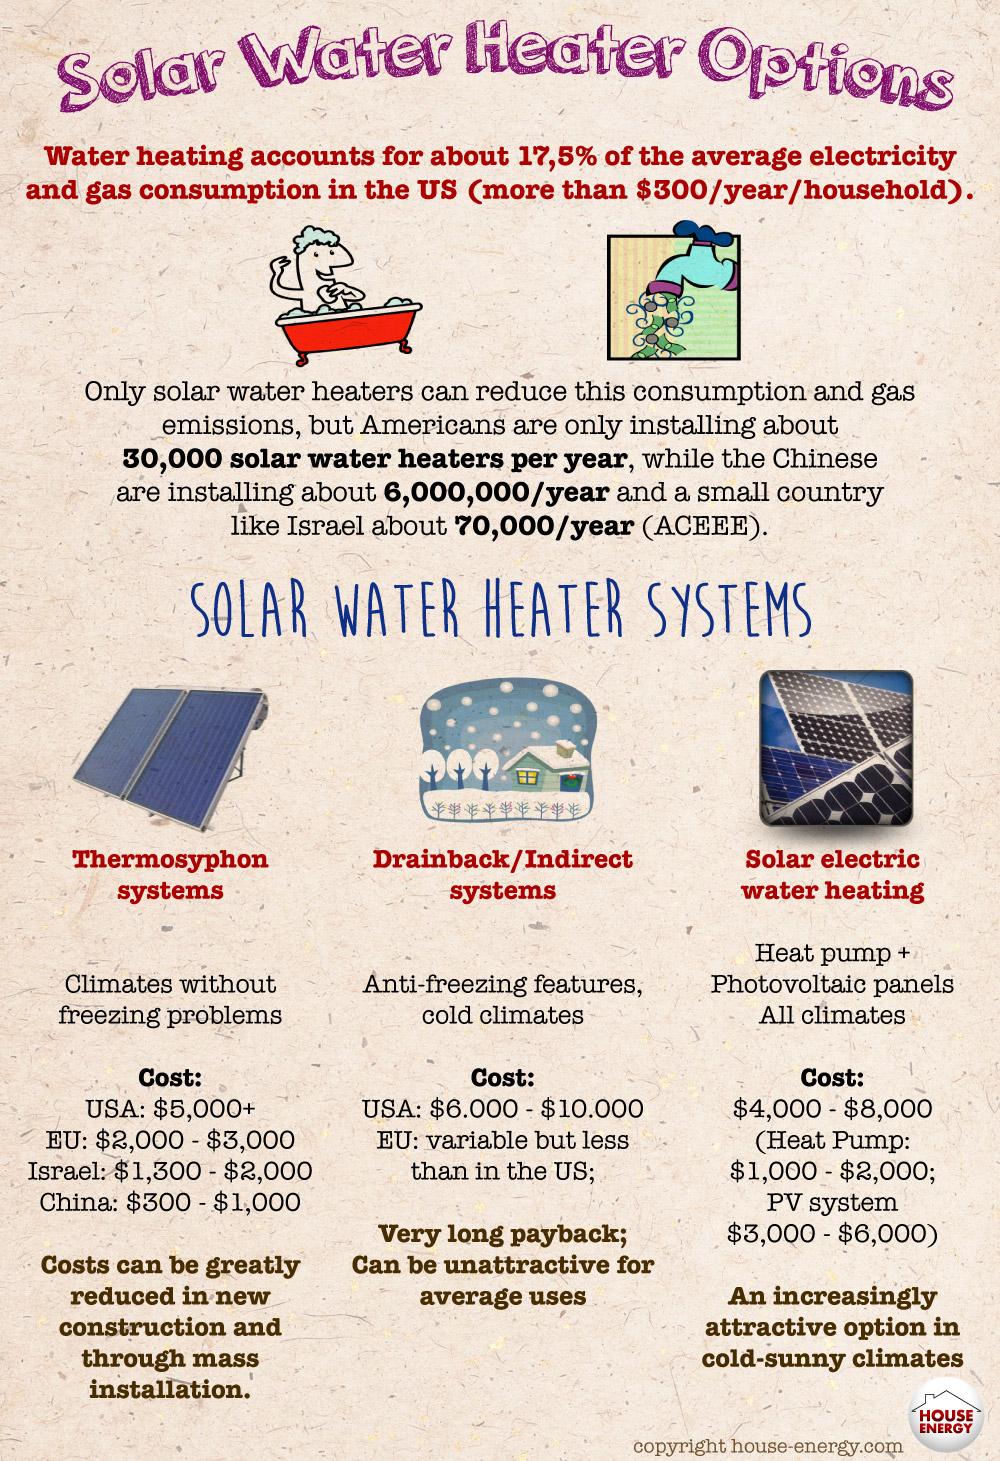 Solar water heater options